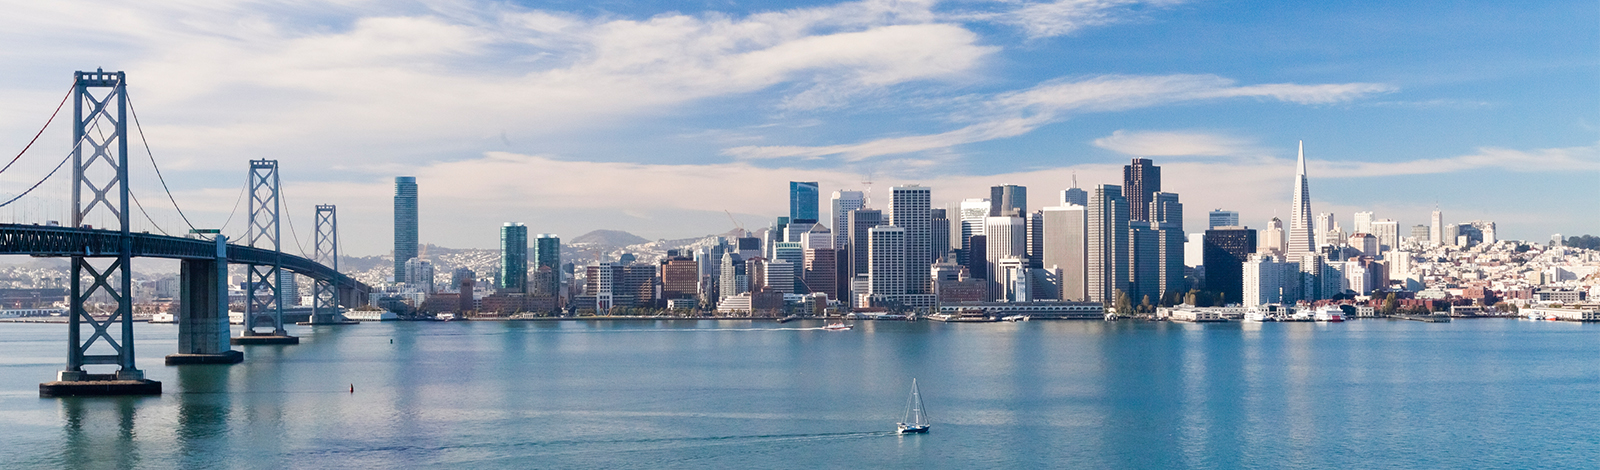 San-francisco-skyline